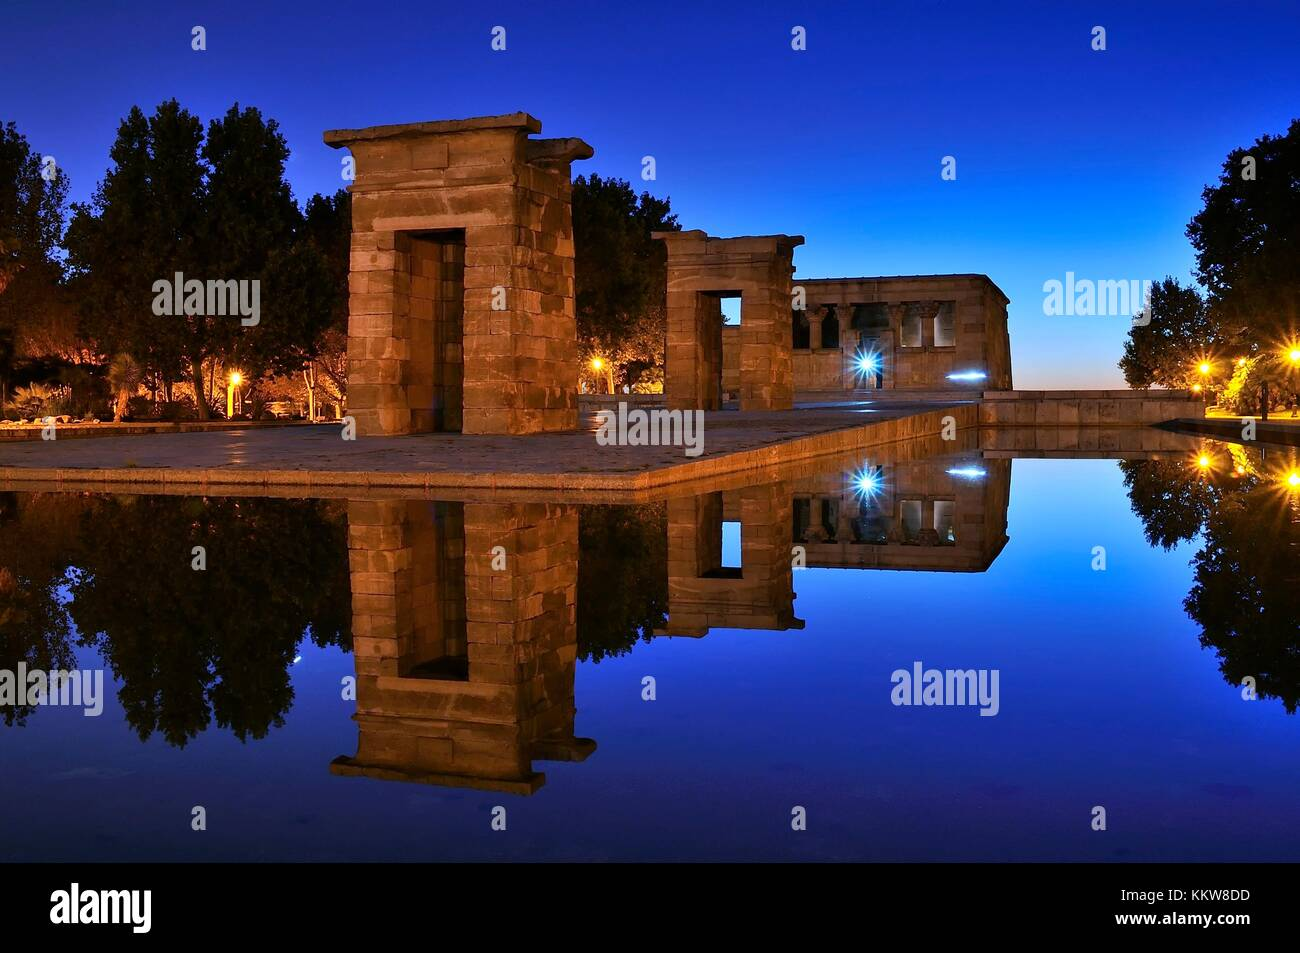 Temple of Debod  in Madrid, donated by Egypt to Spain. - Stock Image